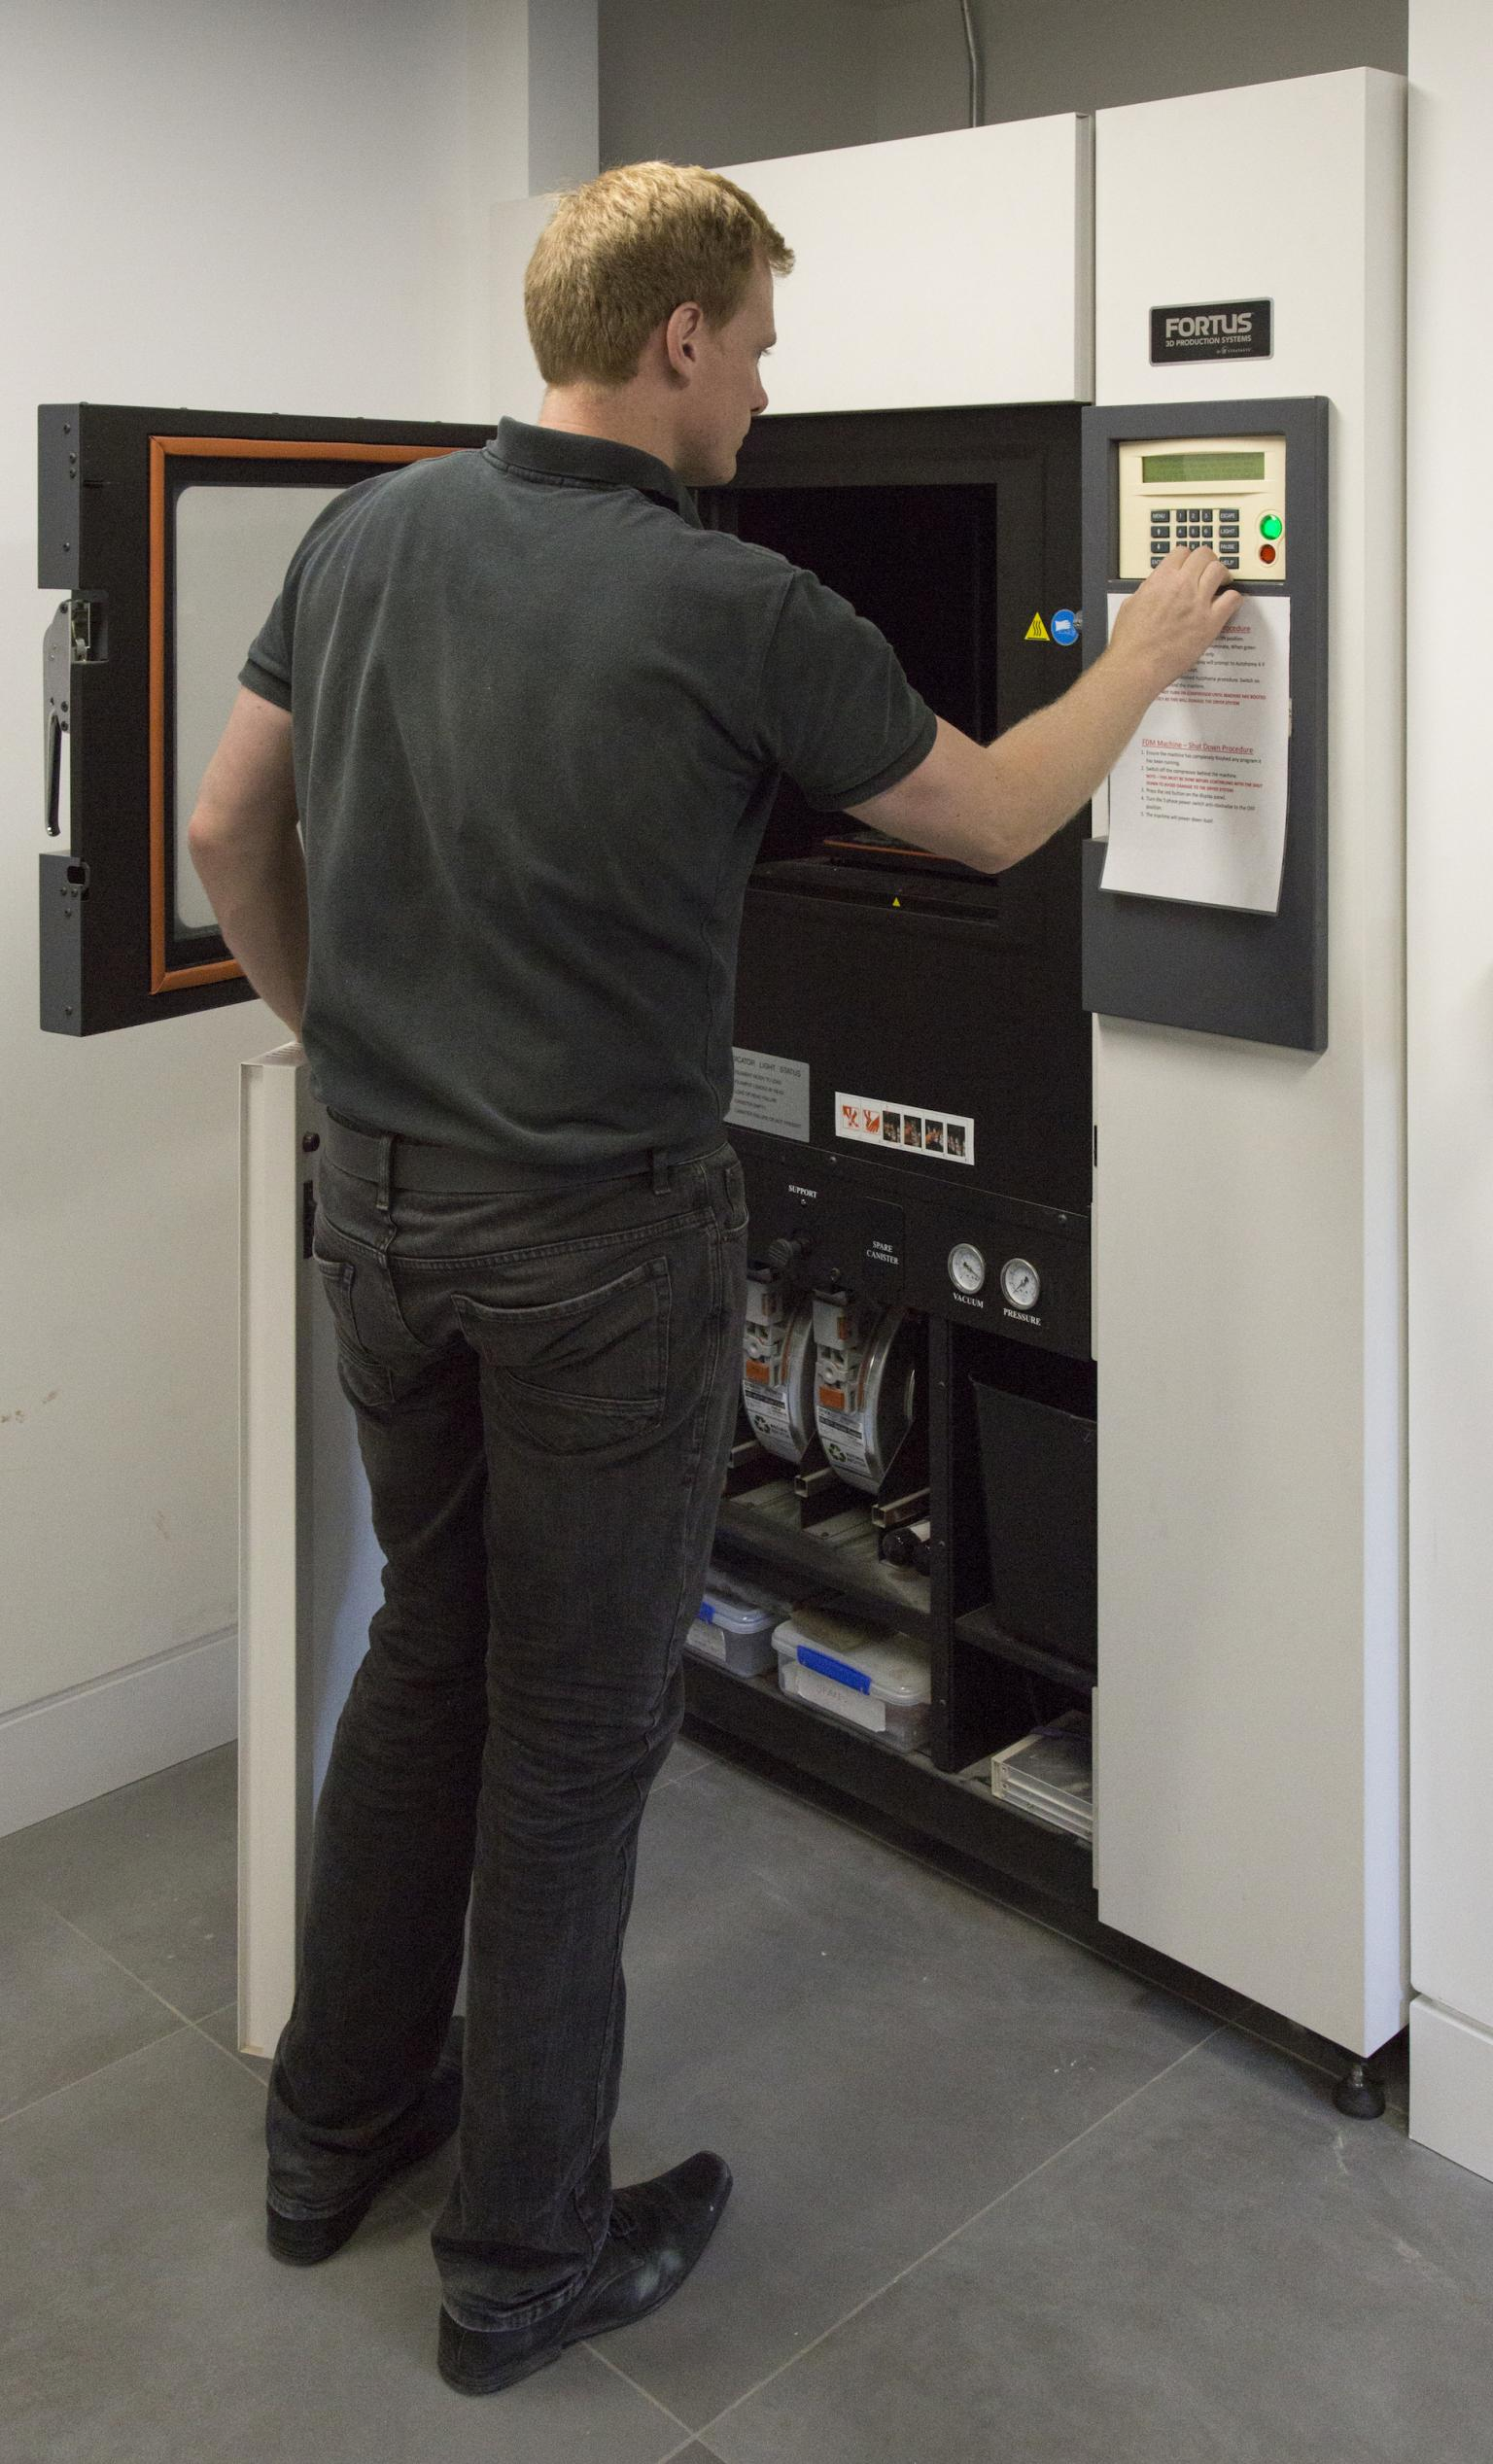 3D printing being performed using a Fortus printer from Stratasys